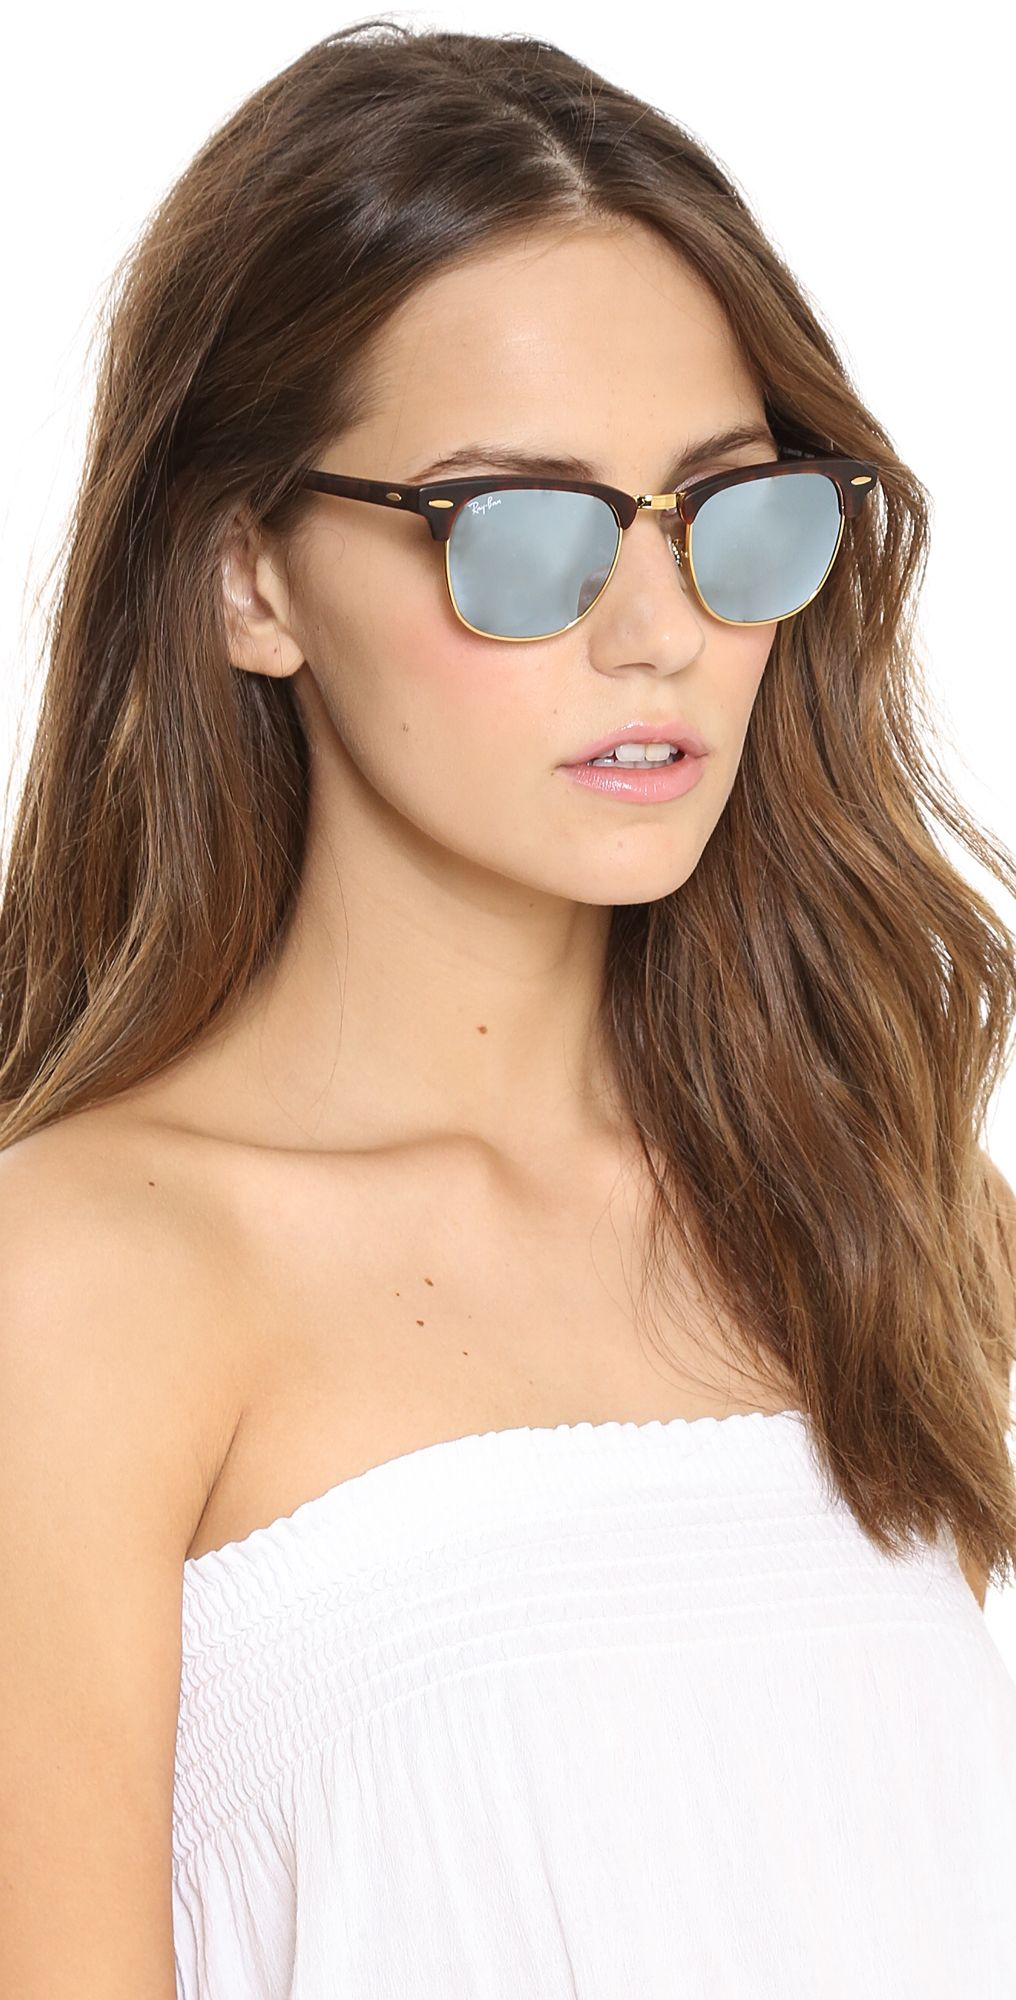 d3b5c96b3c Ray-Ban Mirrored Clubmaster Sunglasses